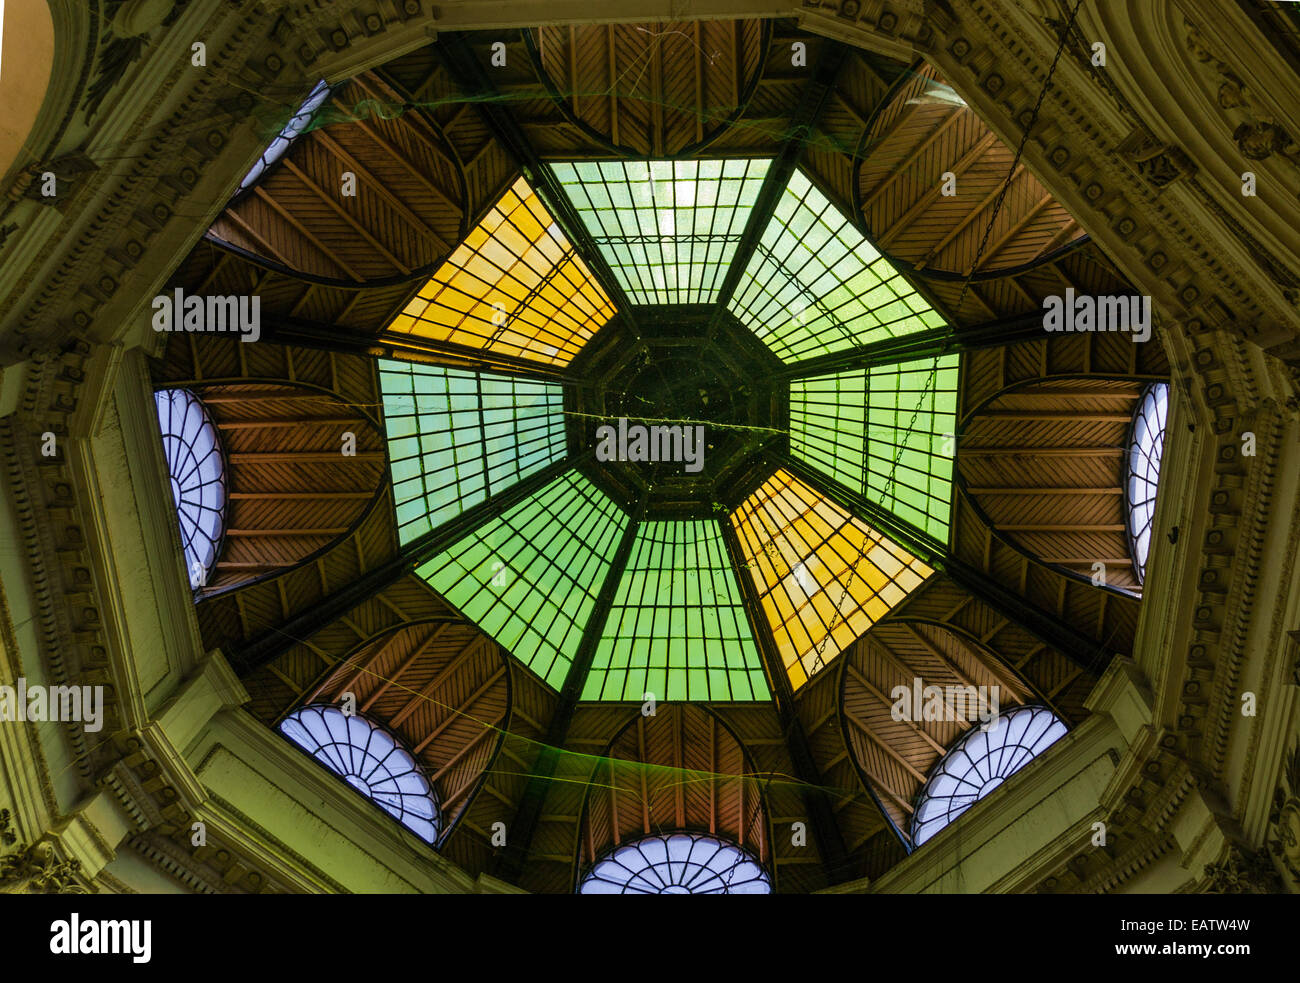 Gallery in Bucharest - Romania - Stock Image